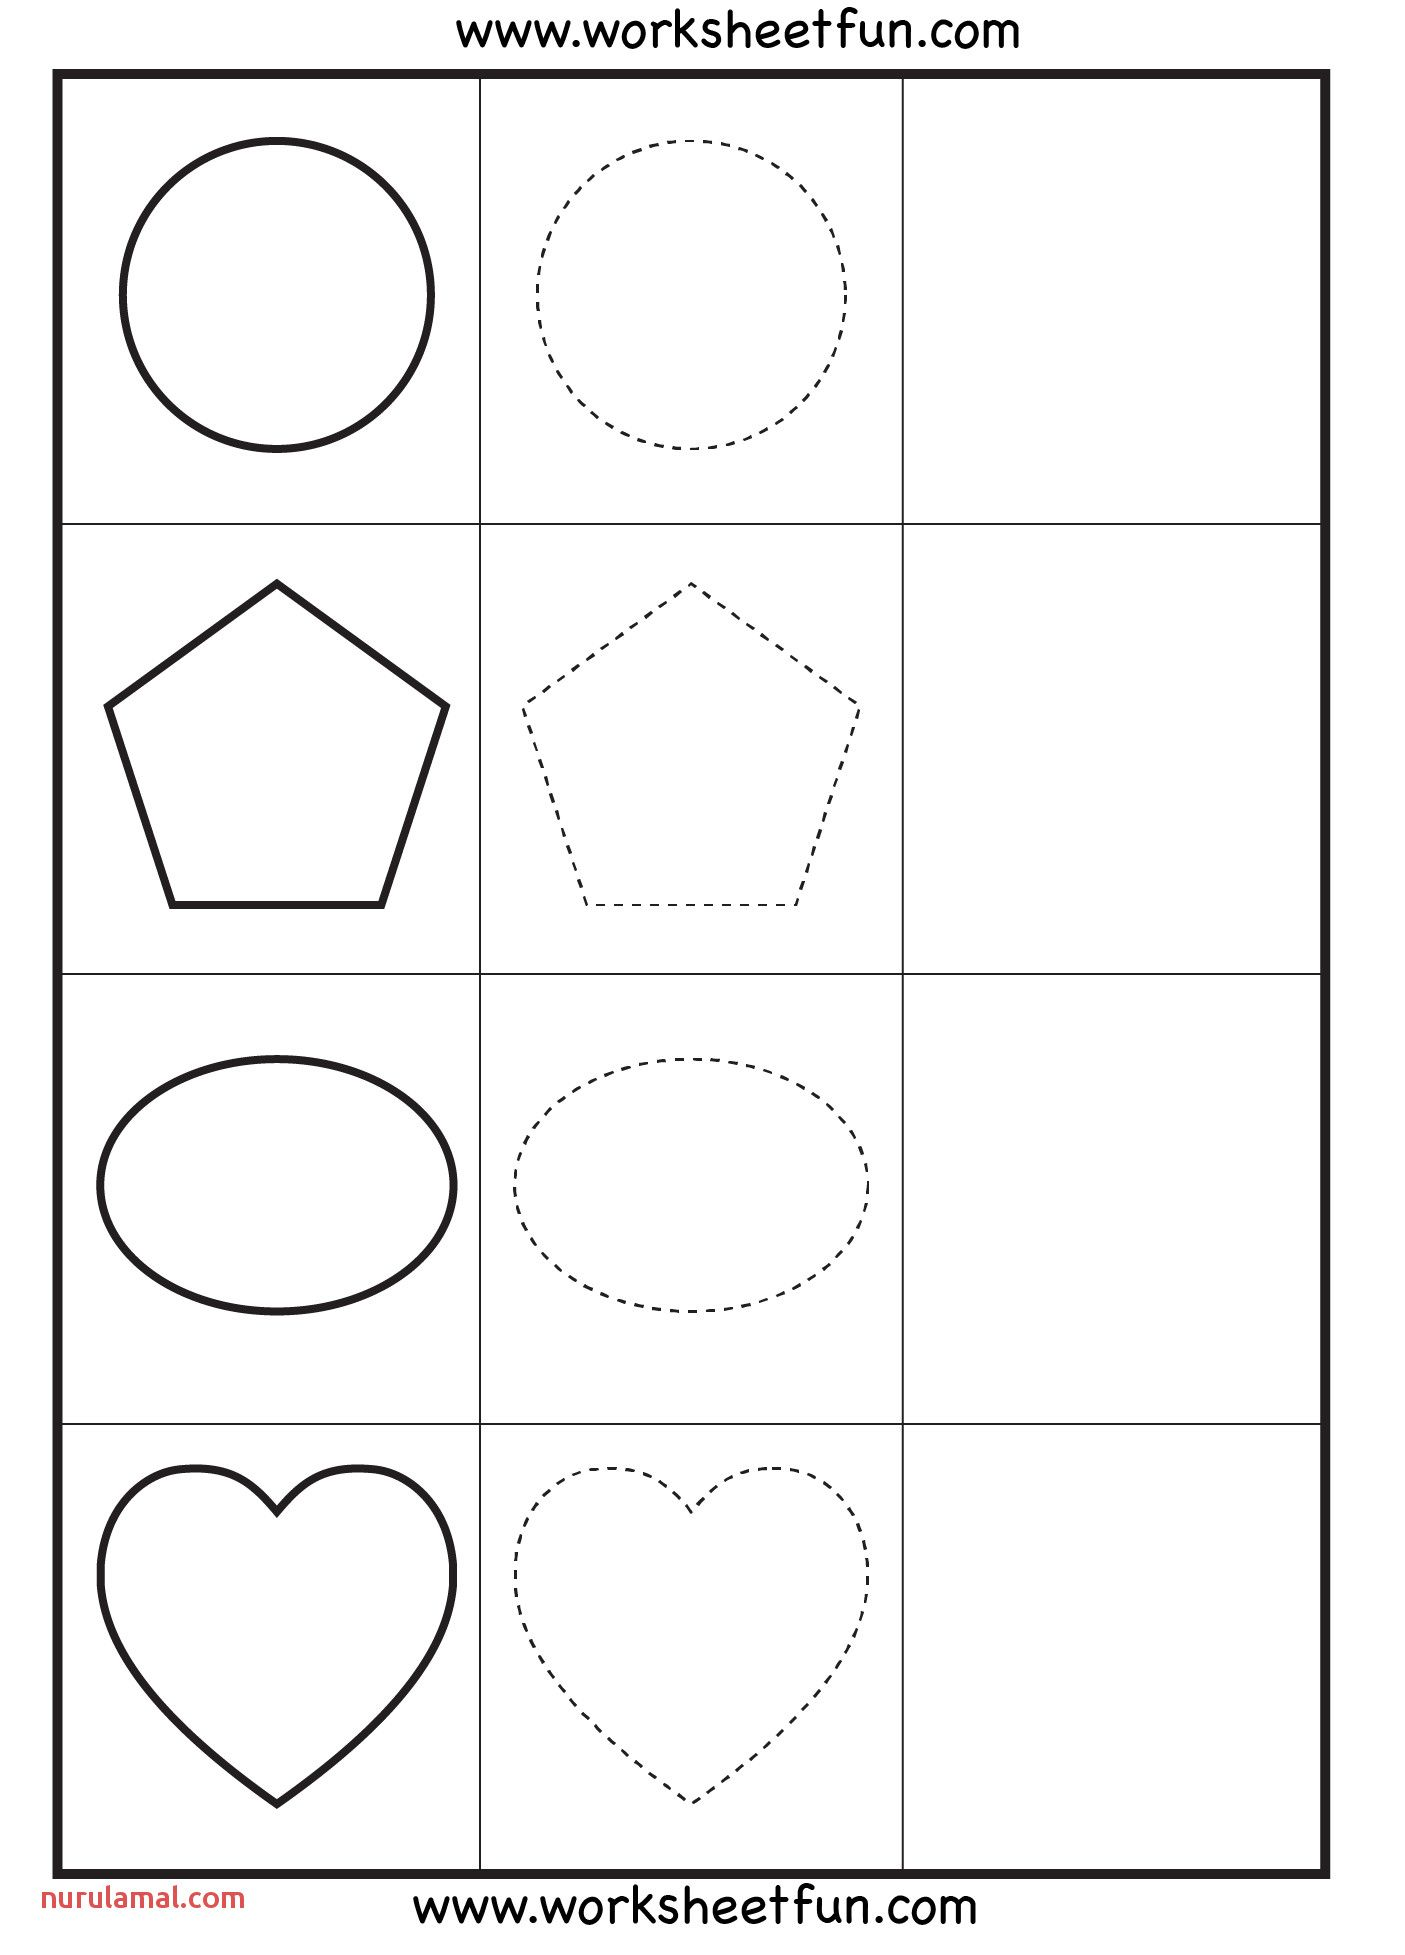 Preschool Tracing Practice Worksheets In